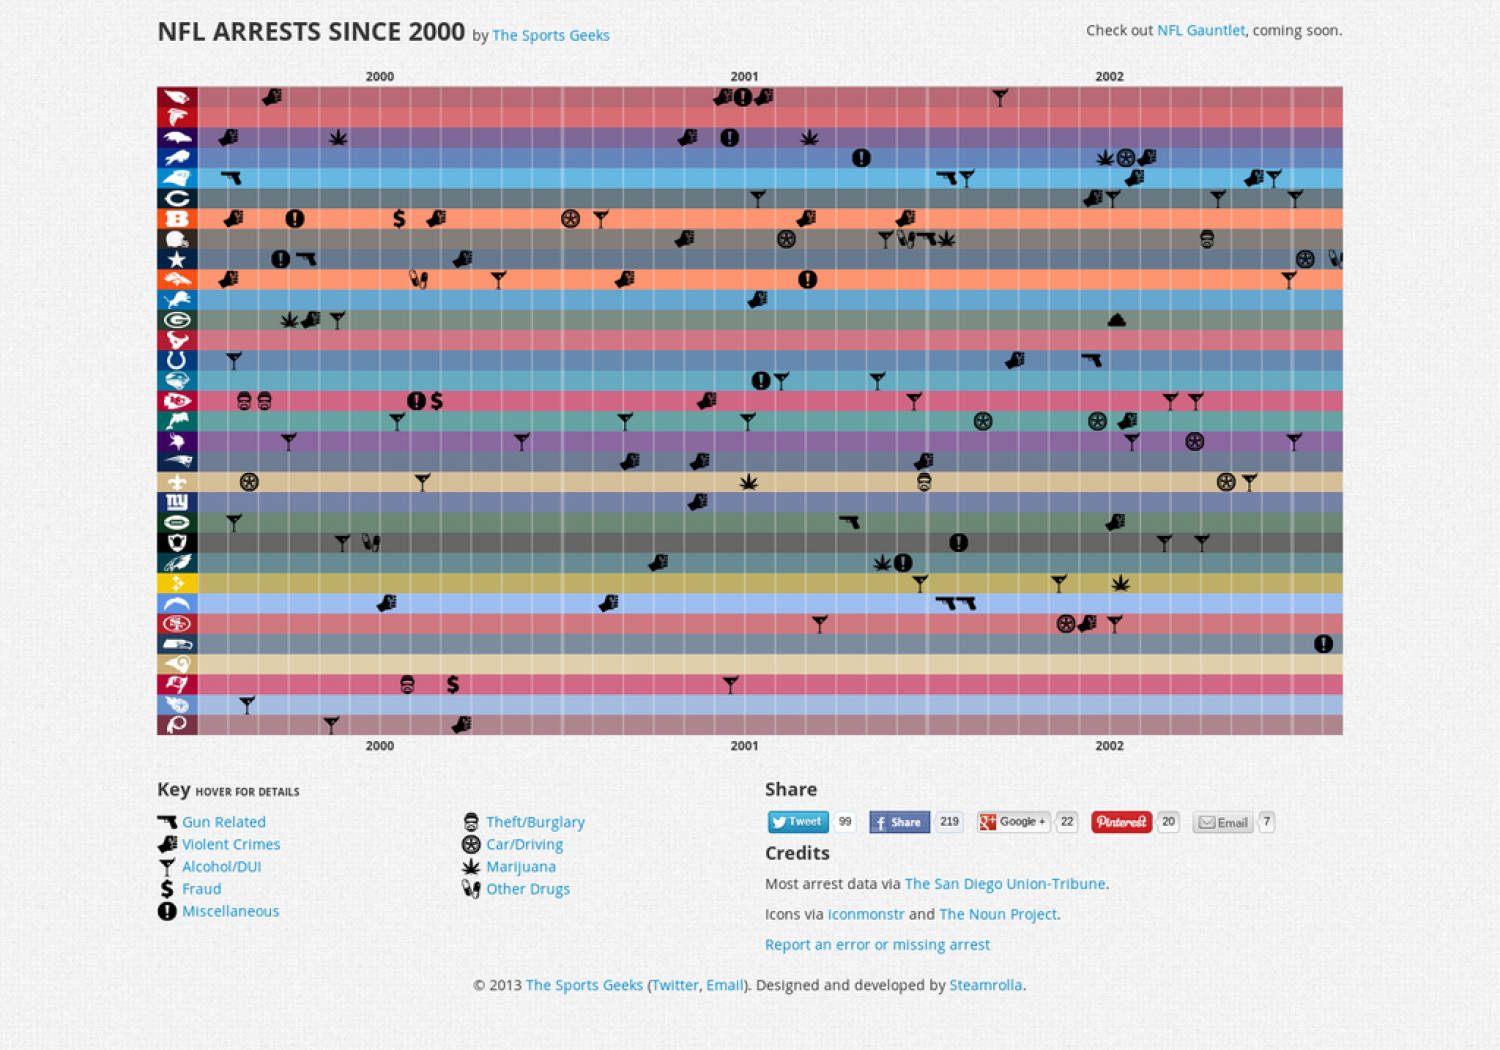 NFL Player Arrests Since 2000 Infographic